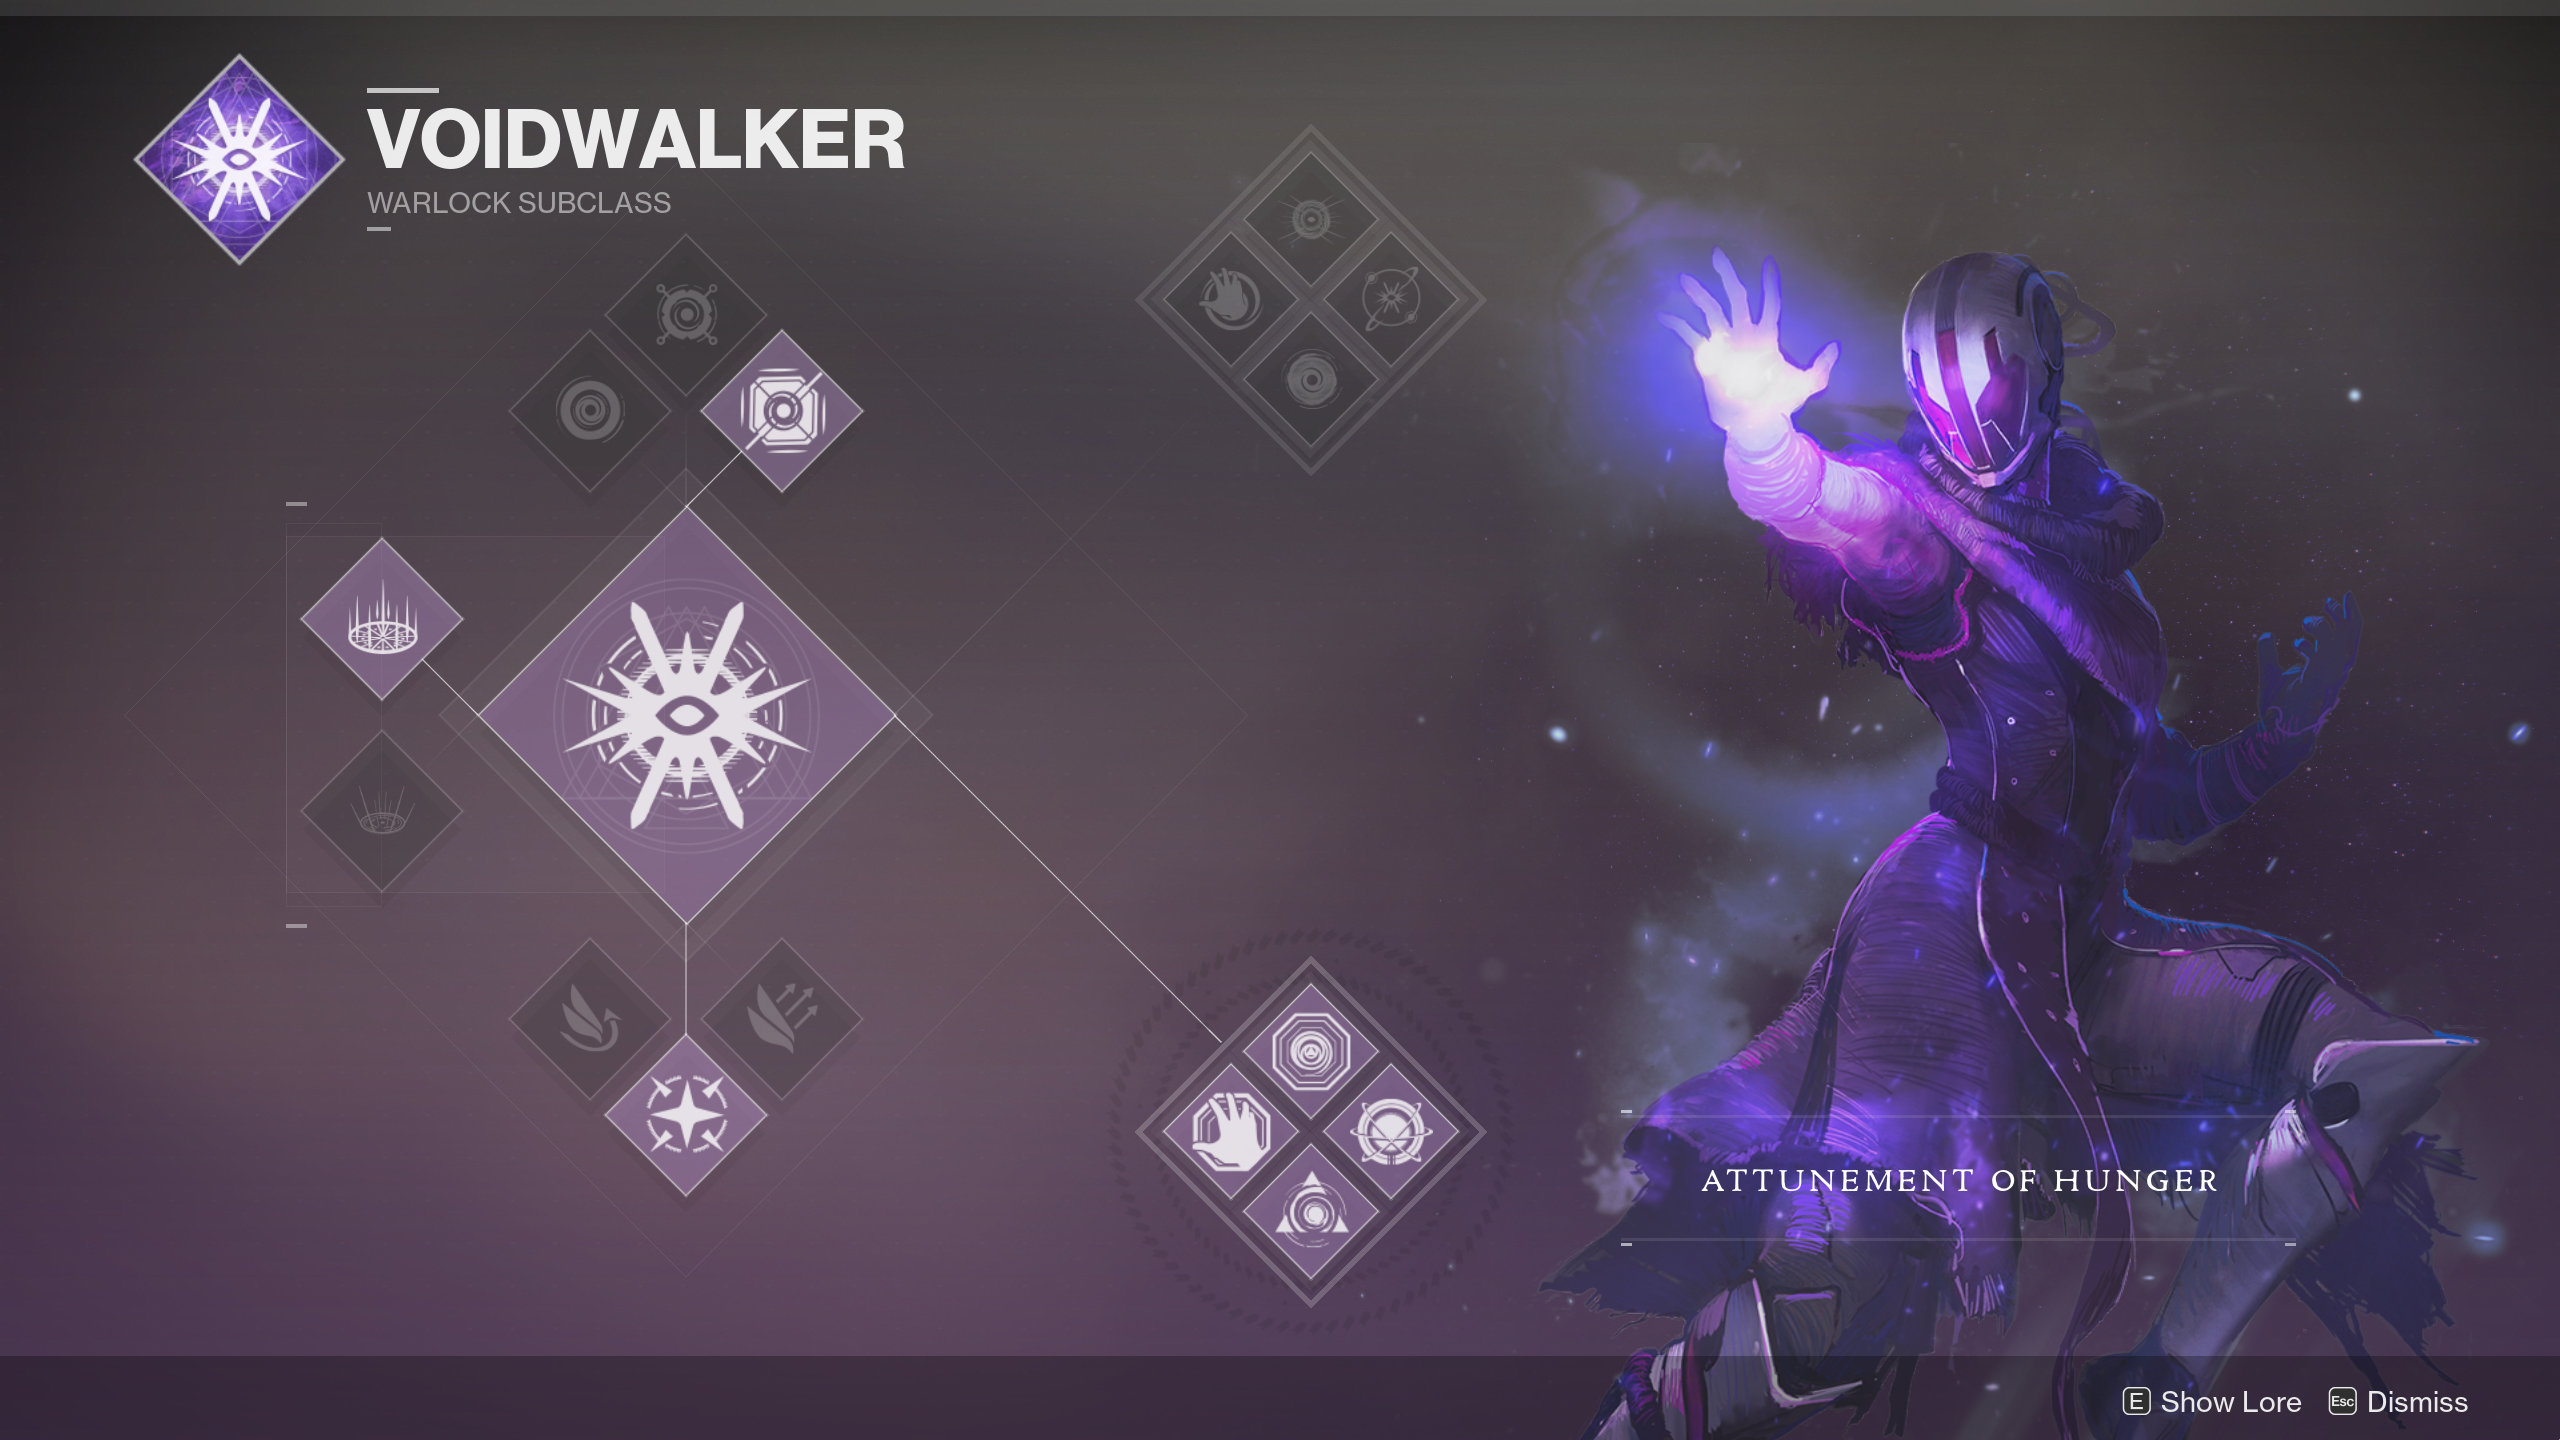 Destiny 2 classes – your full guide to all the subclasses, abilities